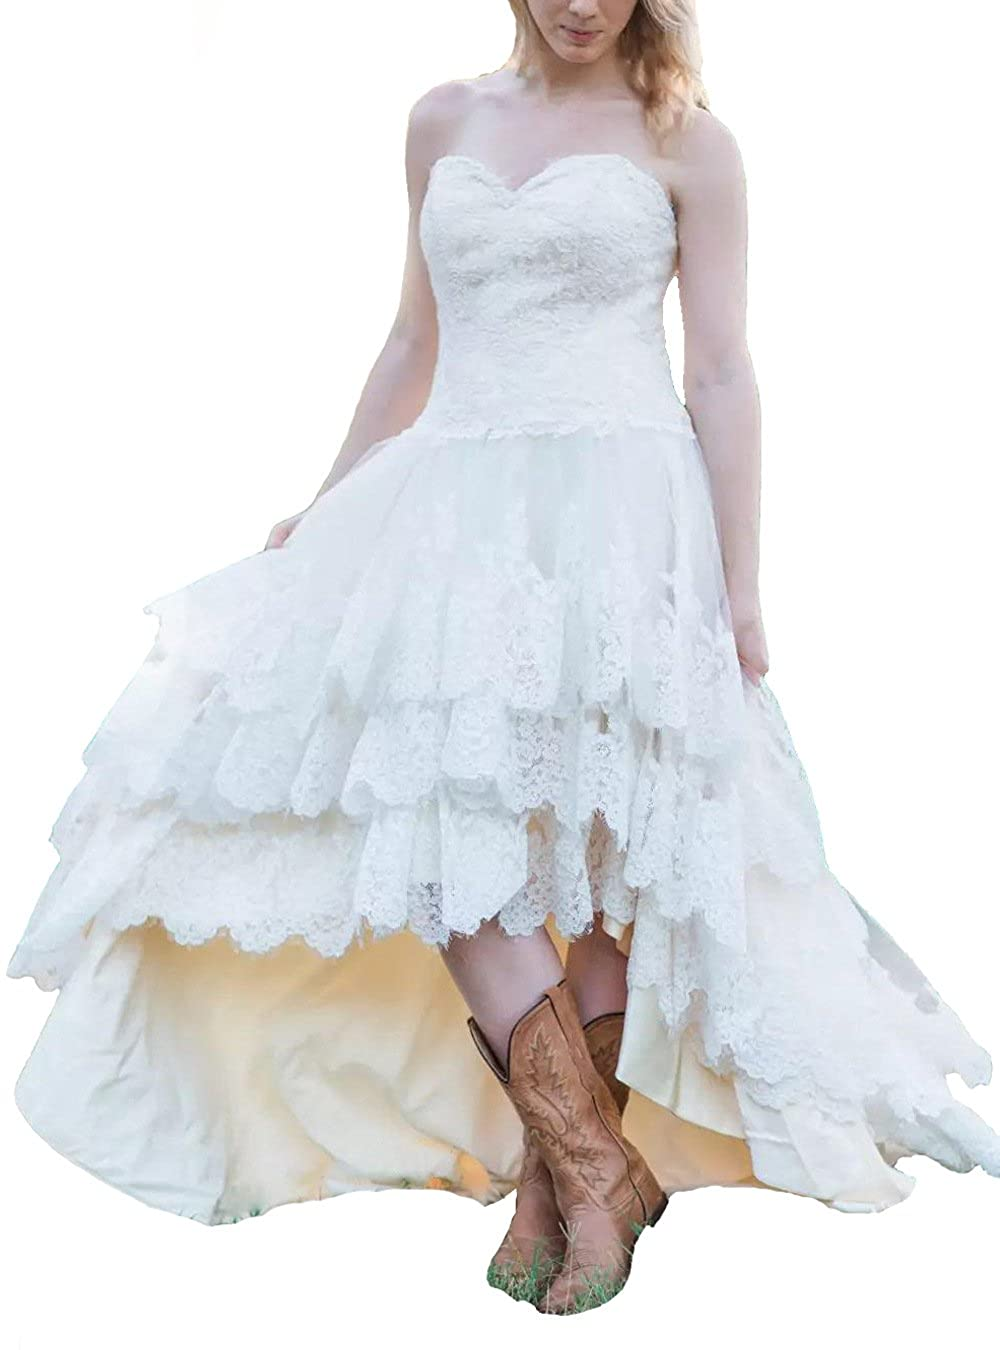 Gmar High Low Country Style Wedding Dresses For Bride A Line Lace